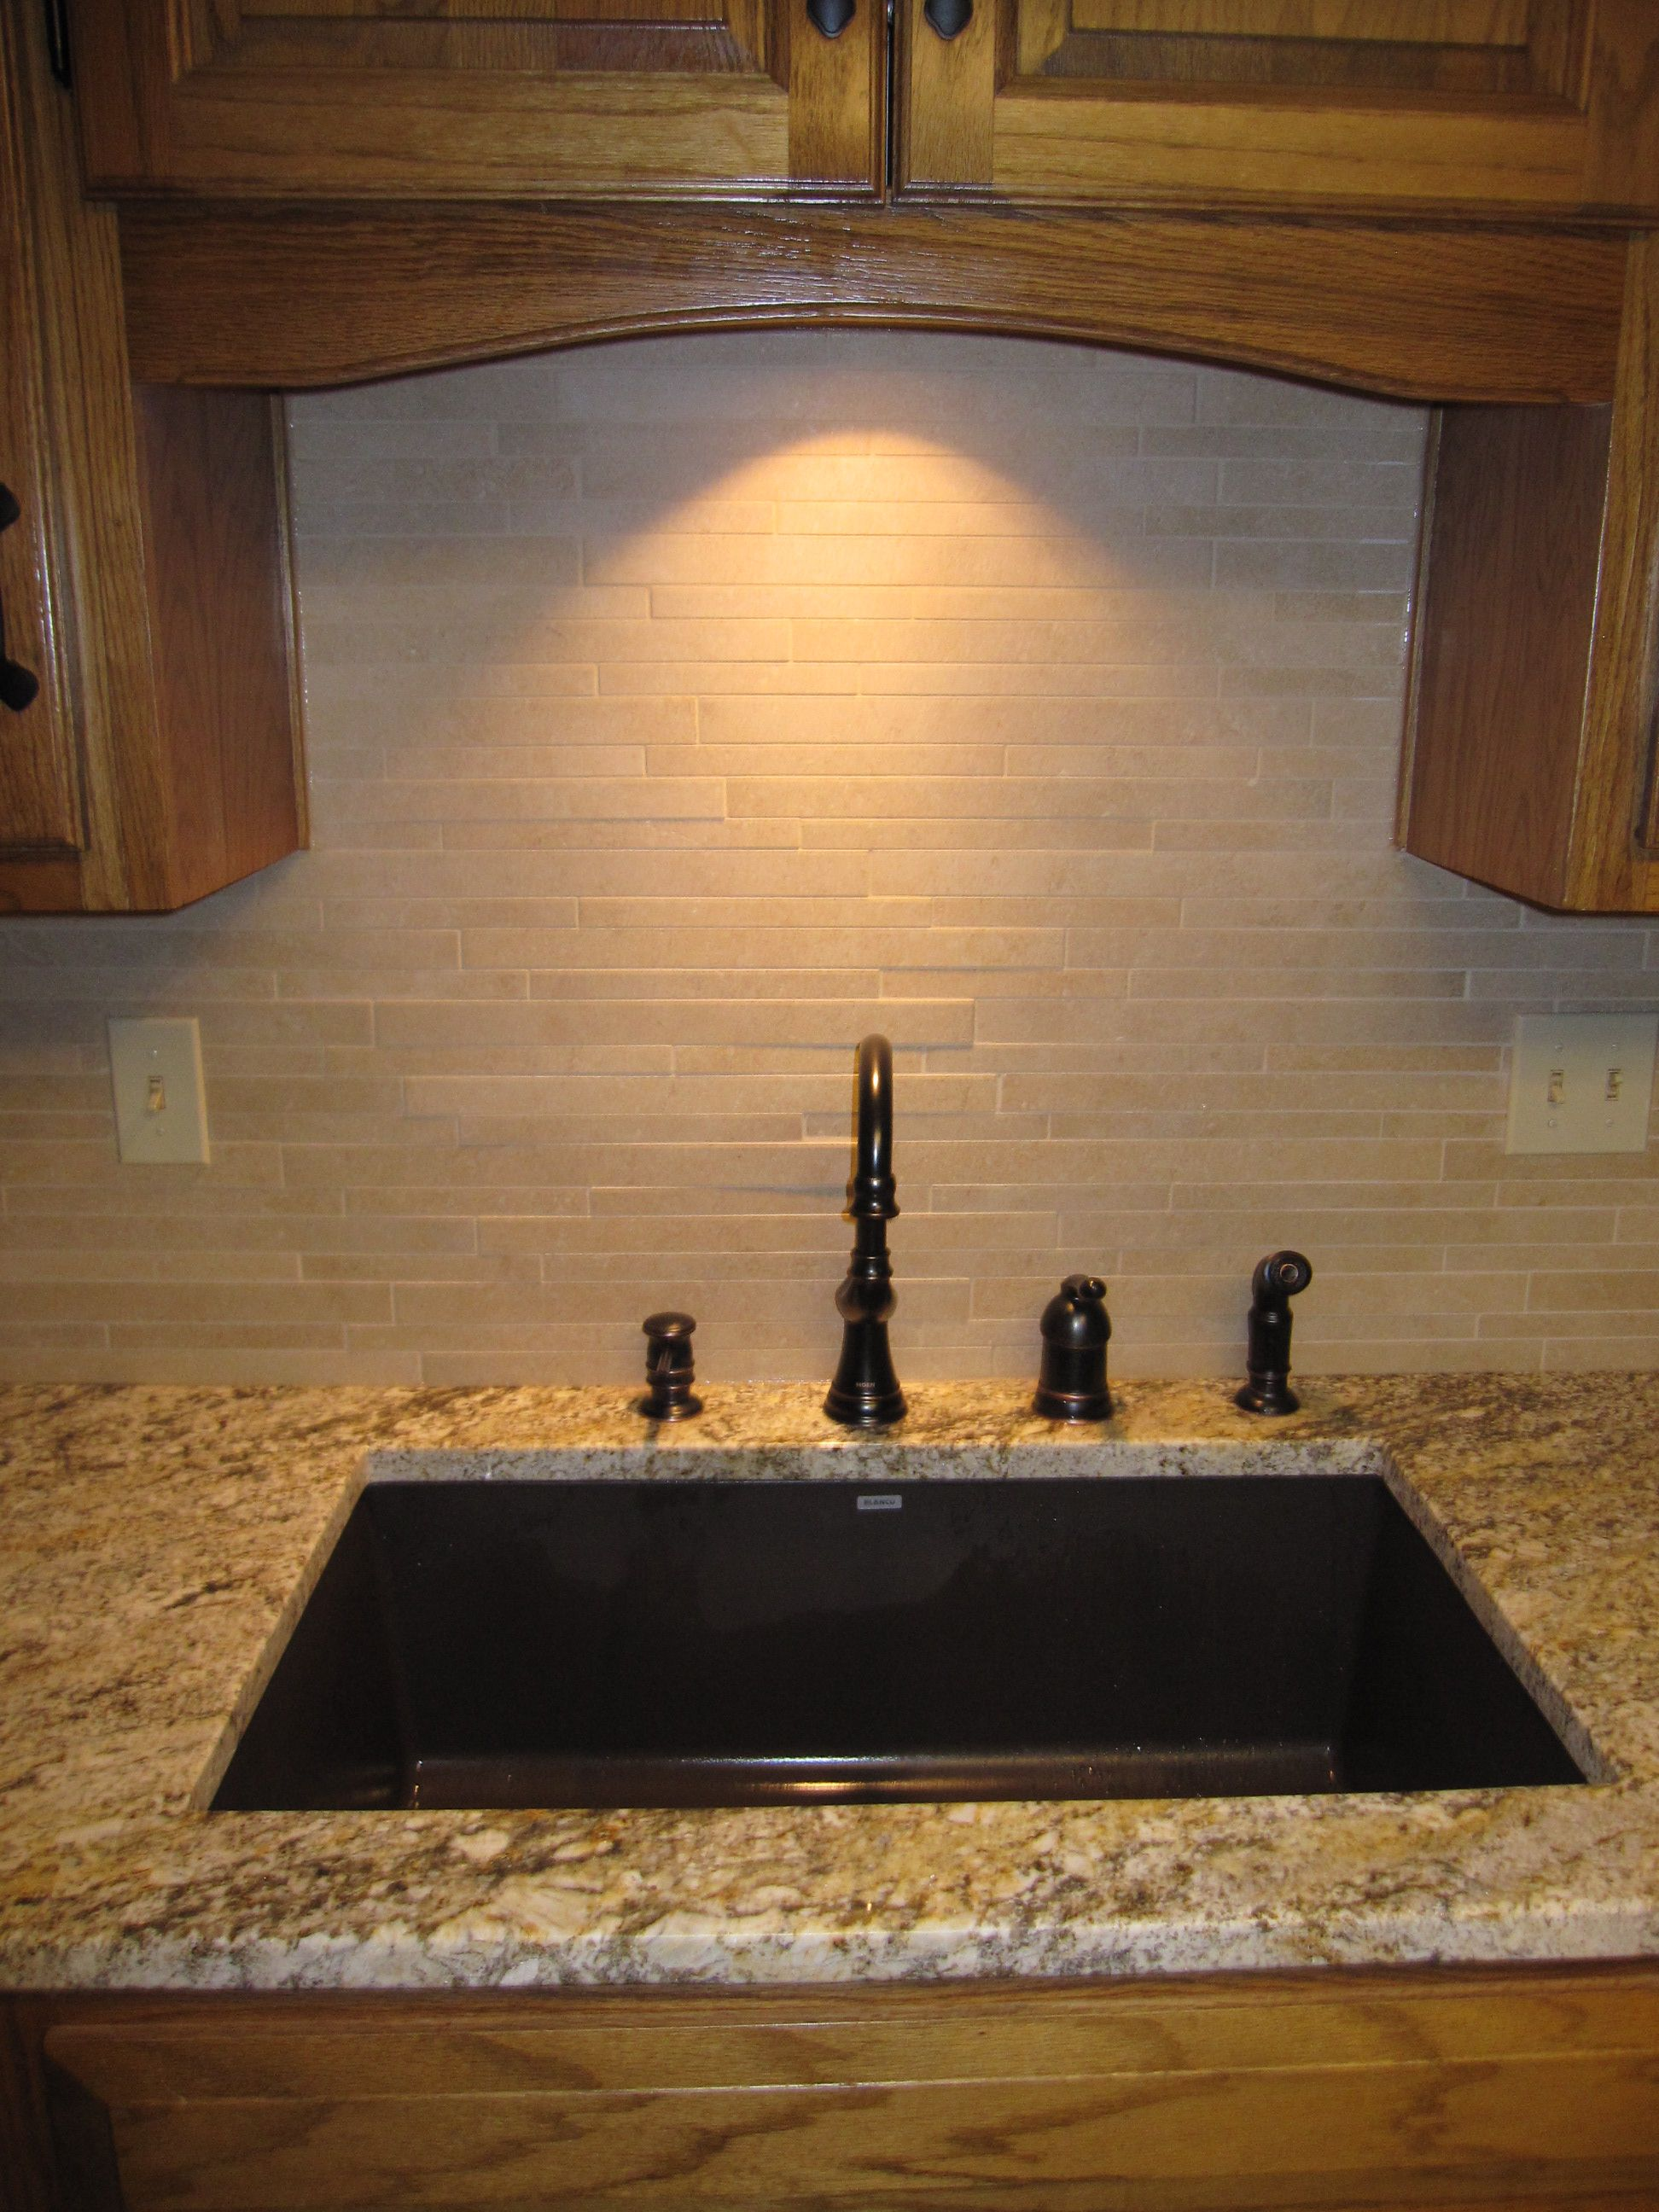 Composite Granite Kitchen Sinks Composite Granite Sinks Composite Sinks Granite Sinks And Cabinets